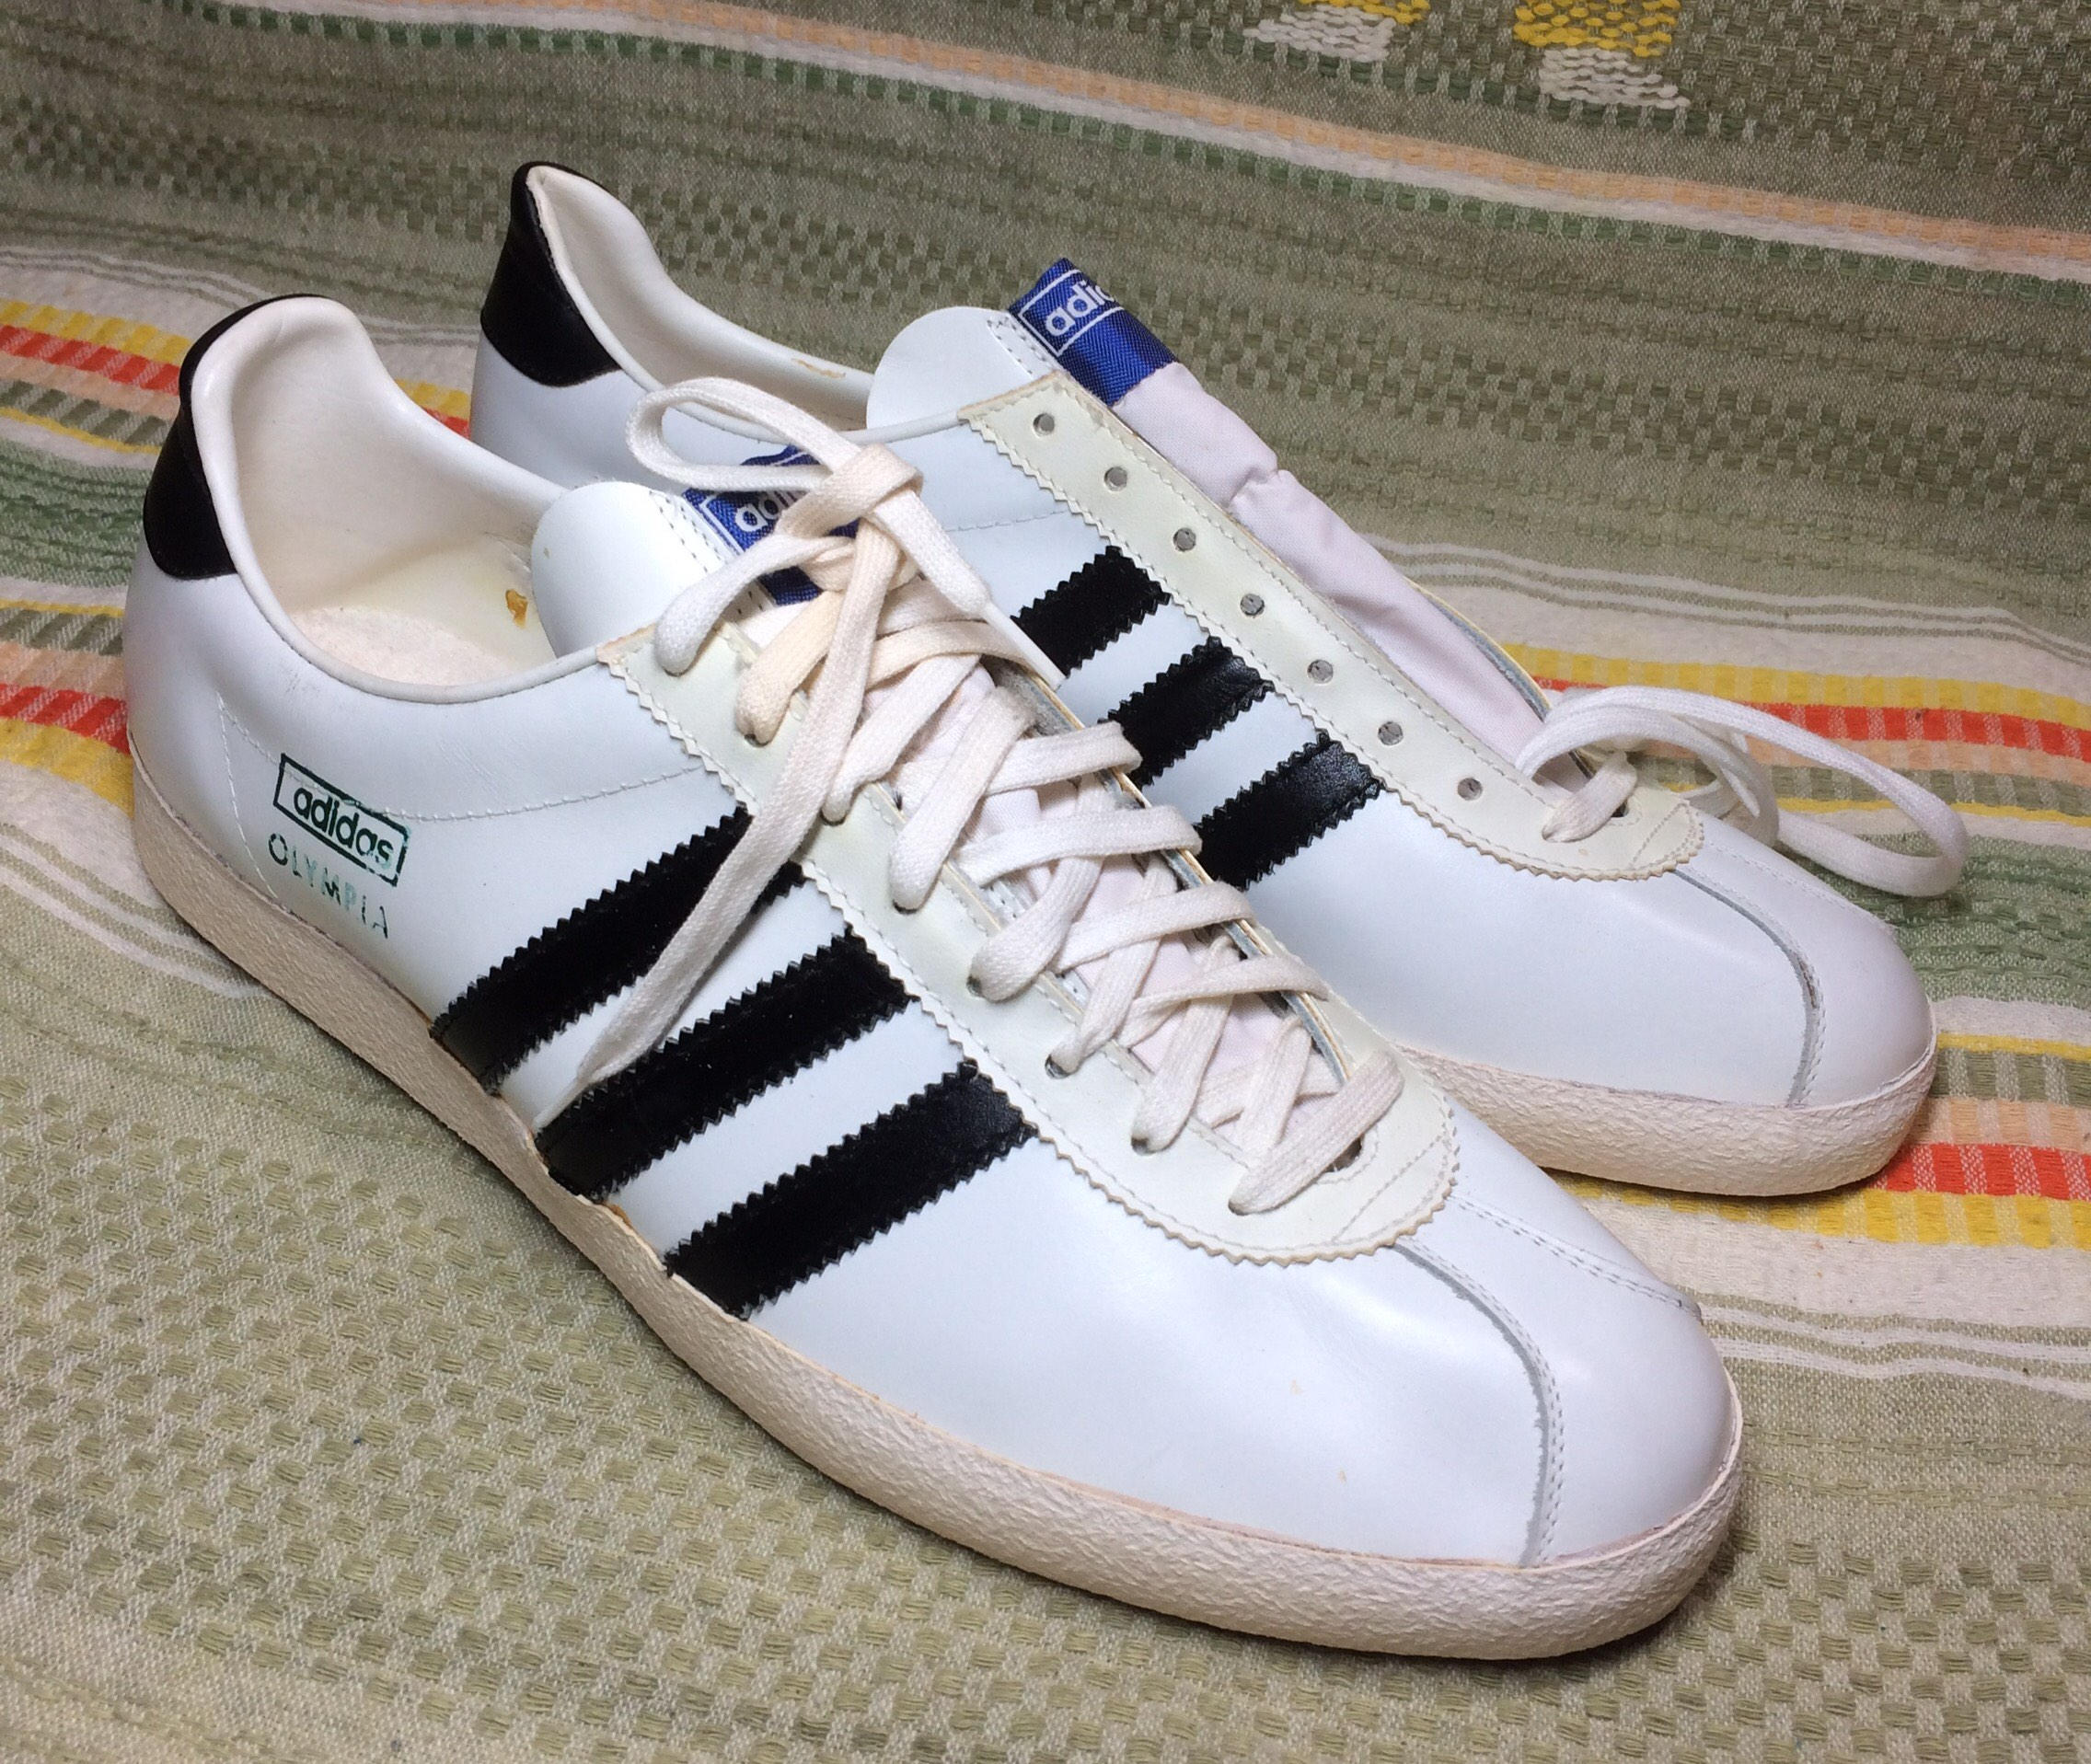 Adidas Olympia made in Austria | Classic sneakers, Adidas